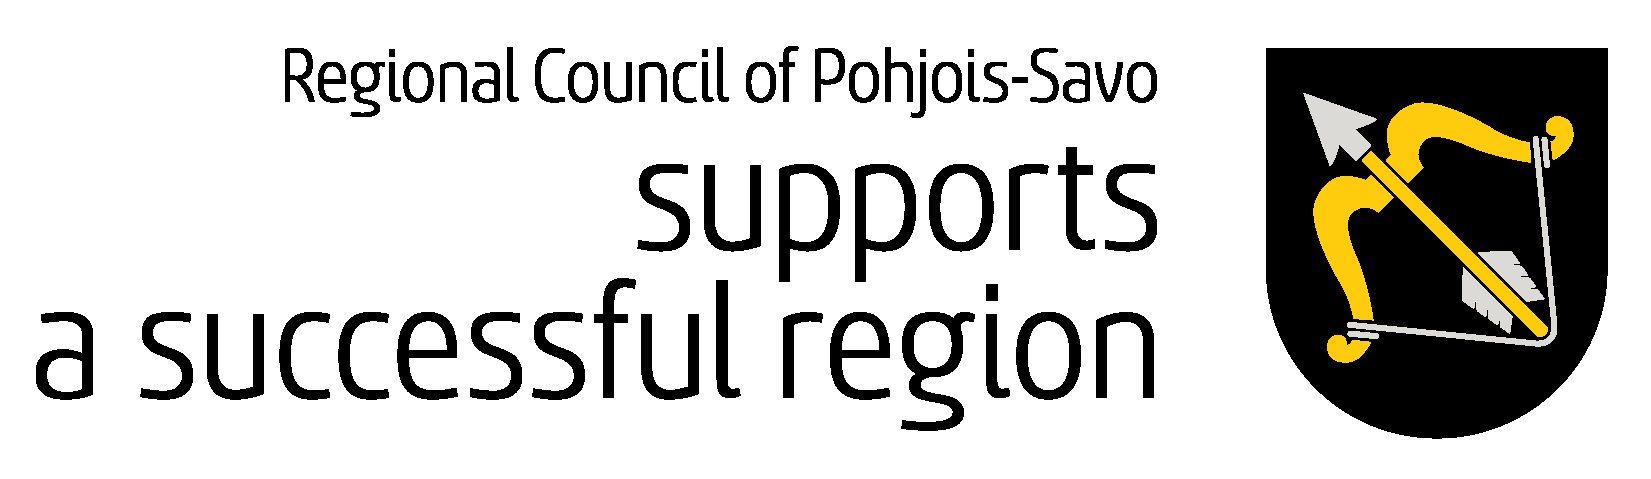 the Regional Council of Pohjois Savo supports a successful region logo